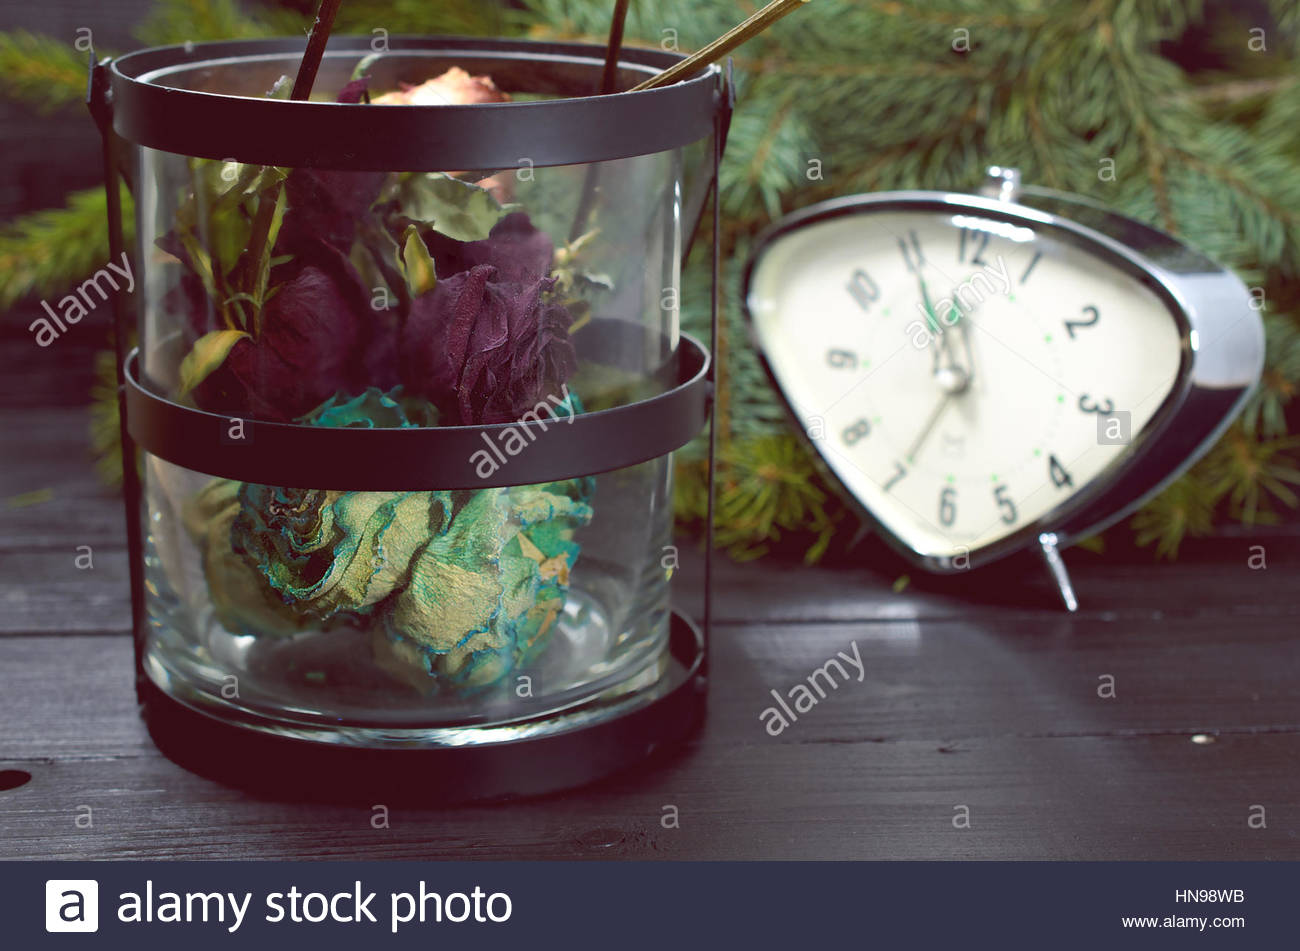 New Year Nostalgia - Dried Flowers And A Clock On A Dark Background - Stock Image